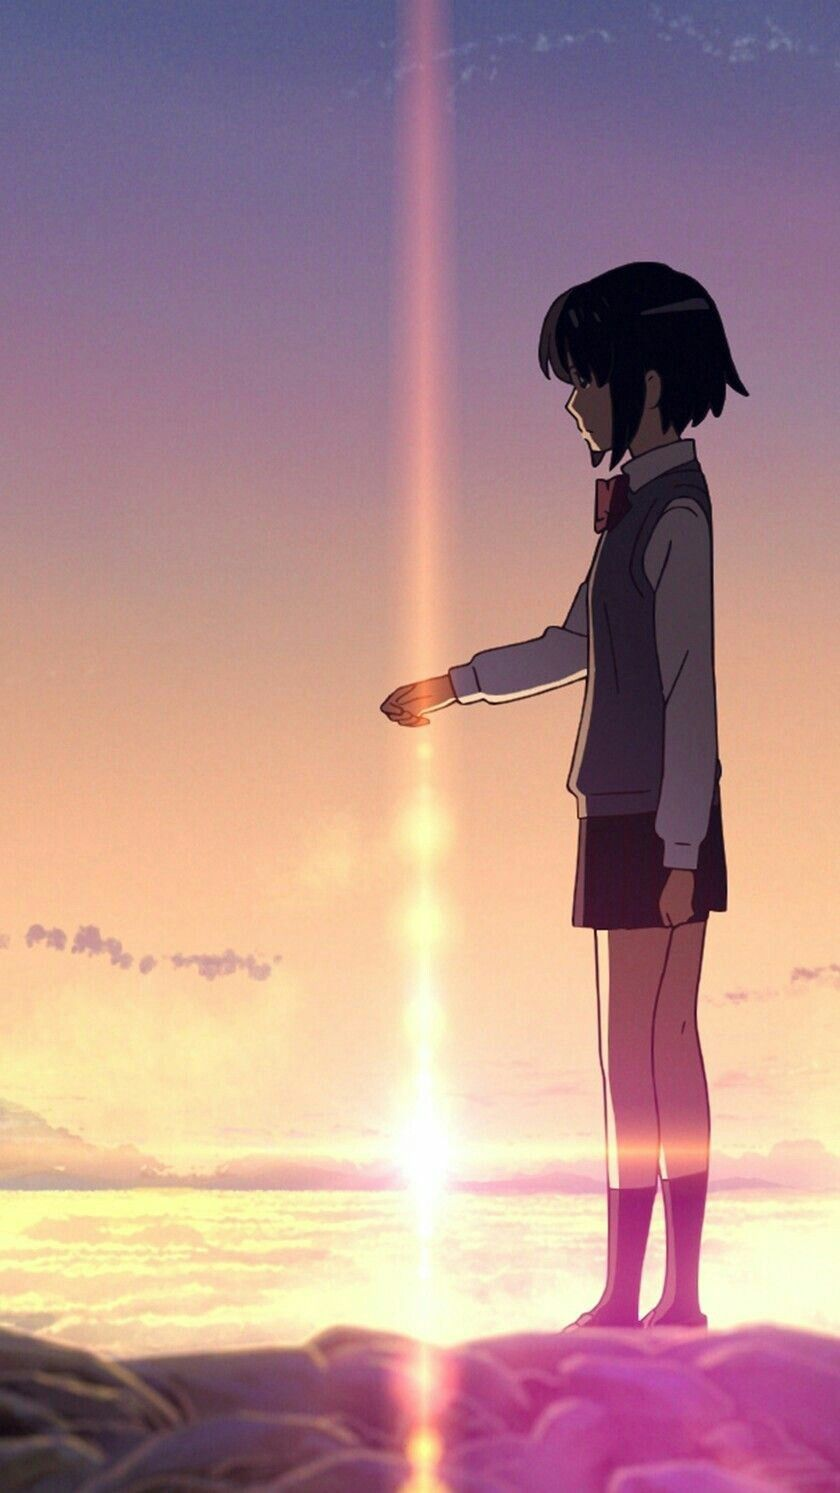 Pin By Meera Champawat On Your Name In 2020 Kimi No Na Wa